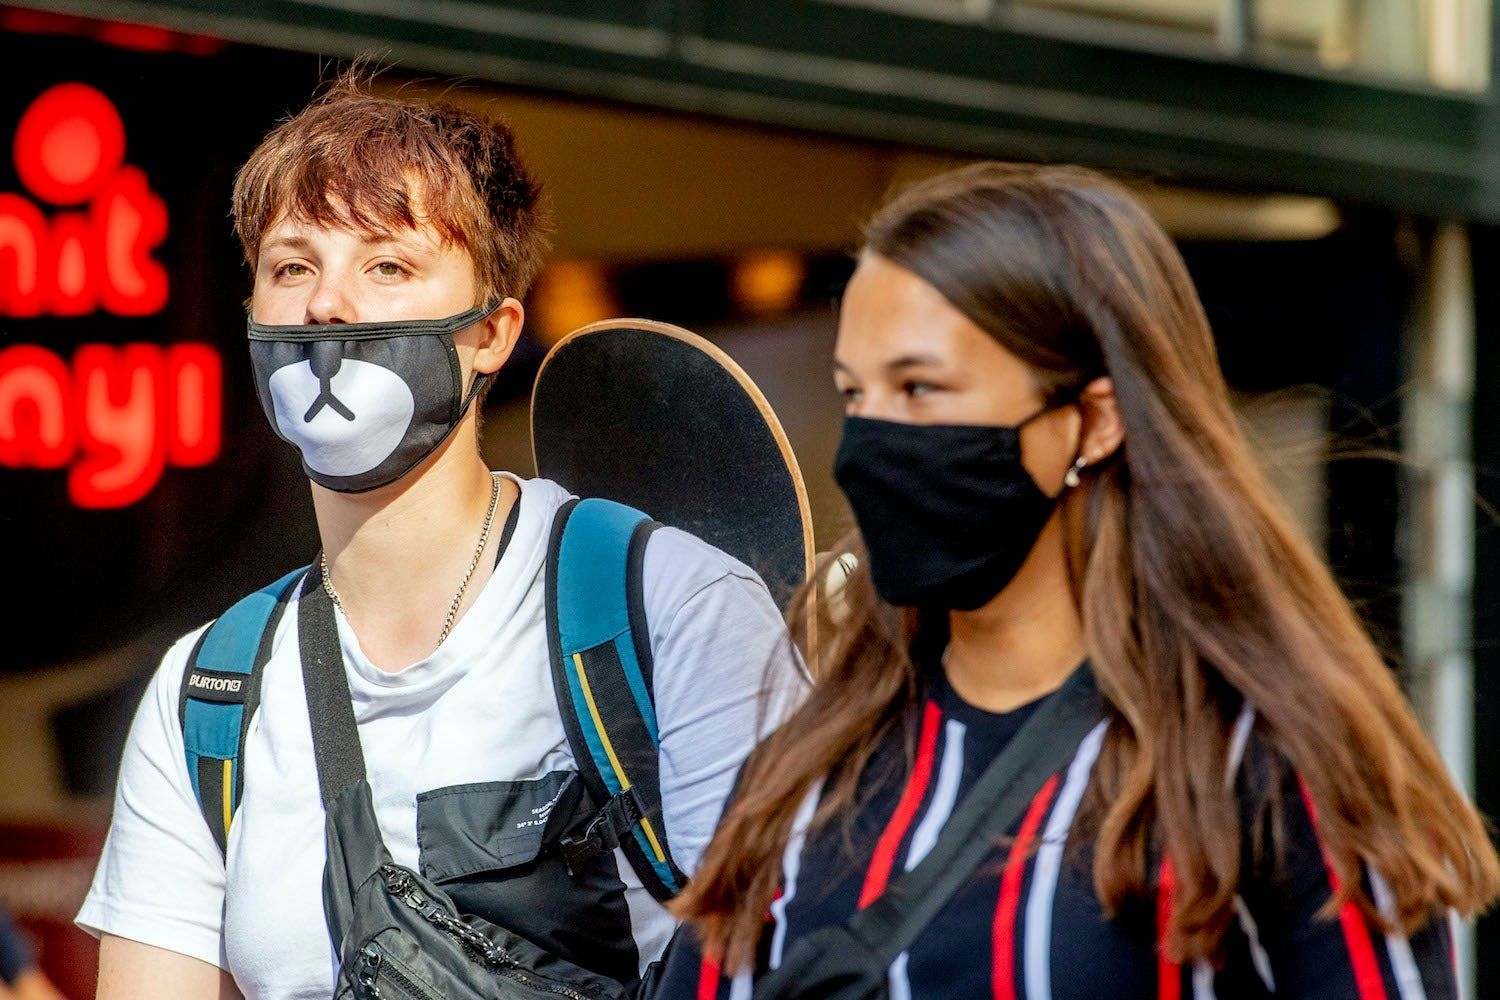 Children over 12 should now also wear face masks, WHO advises